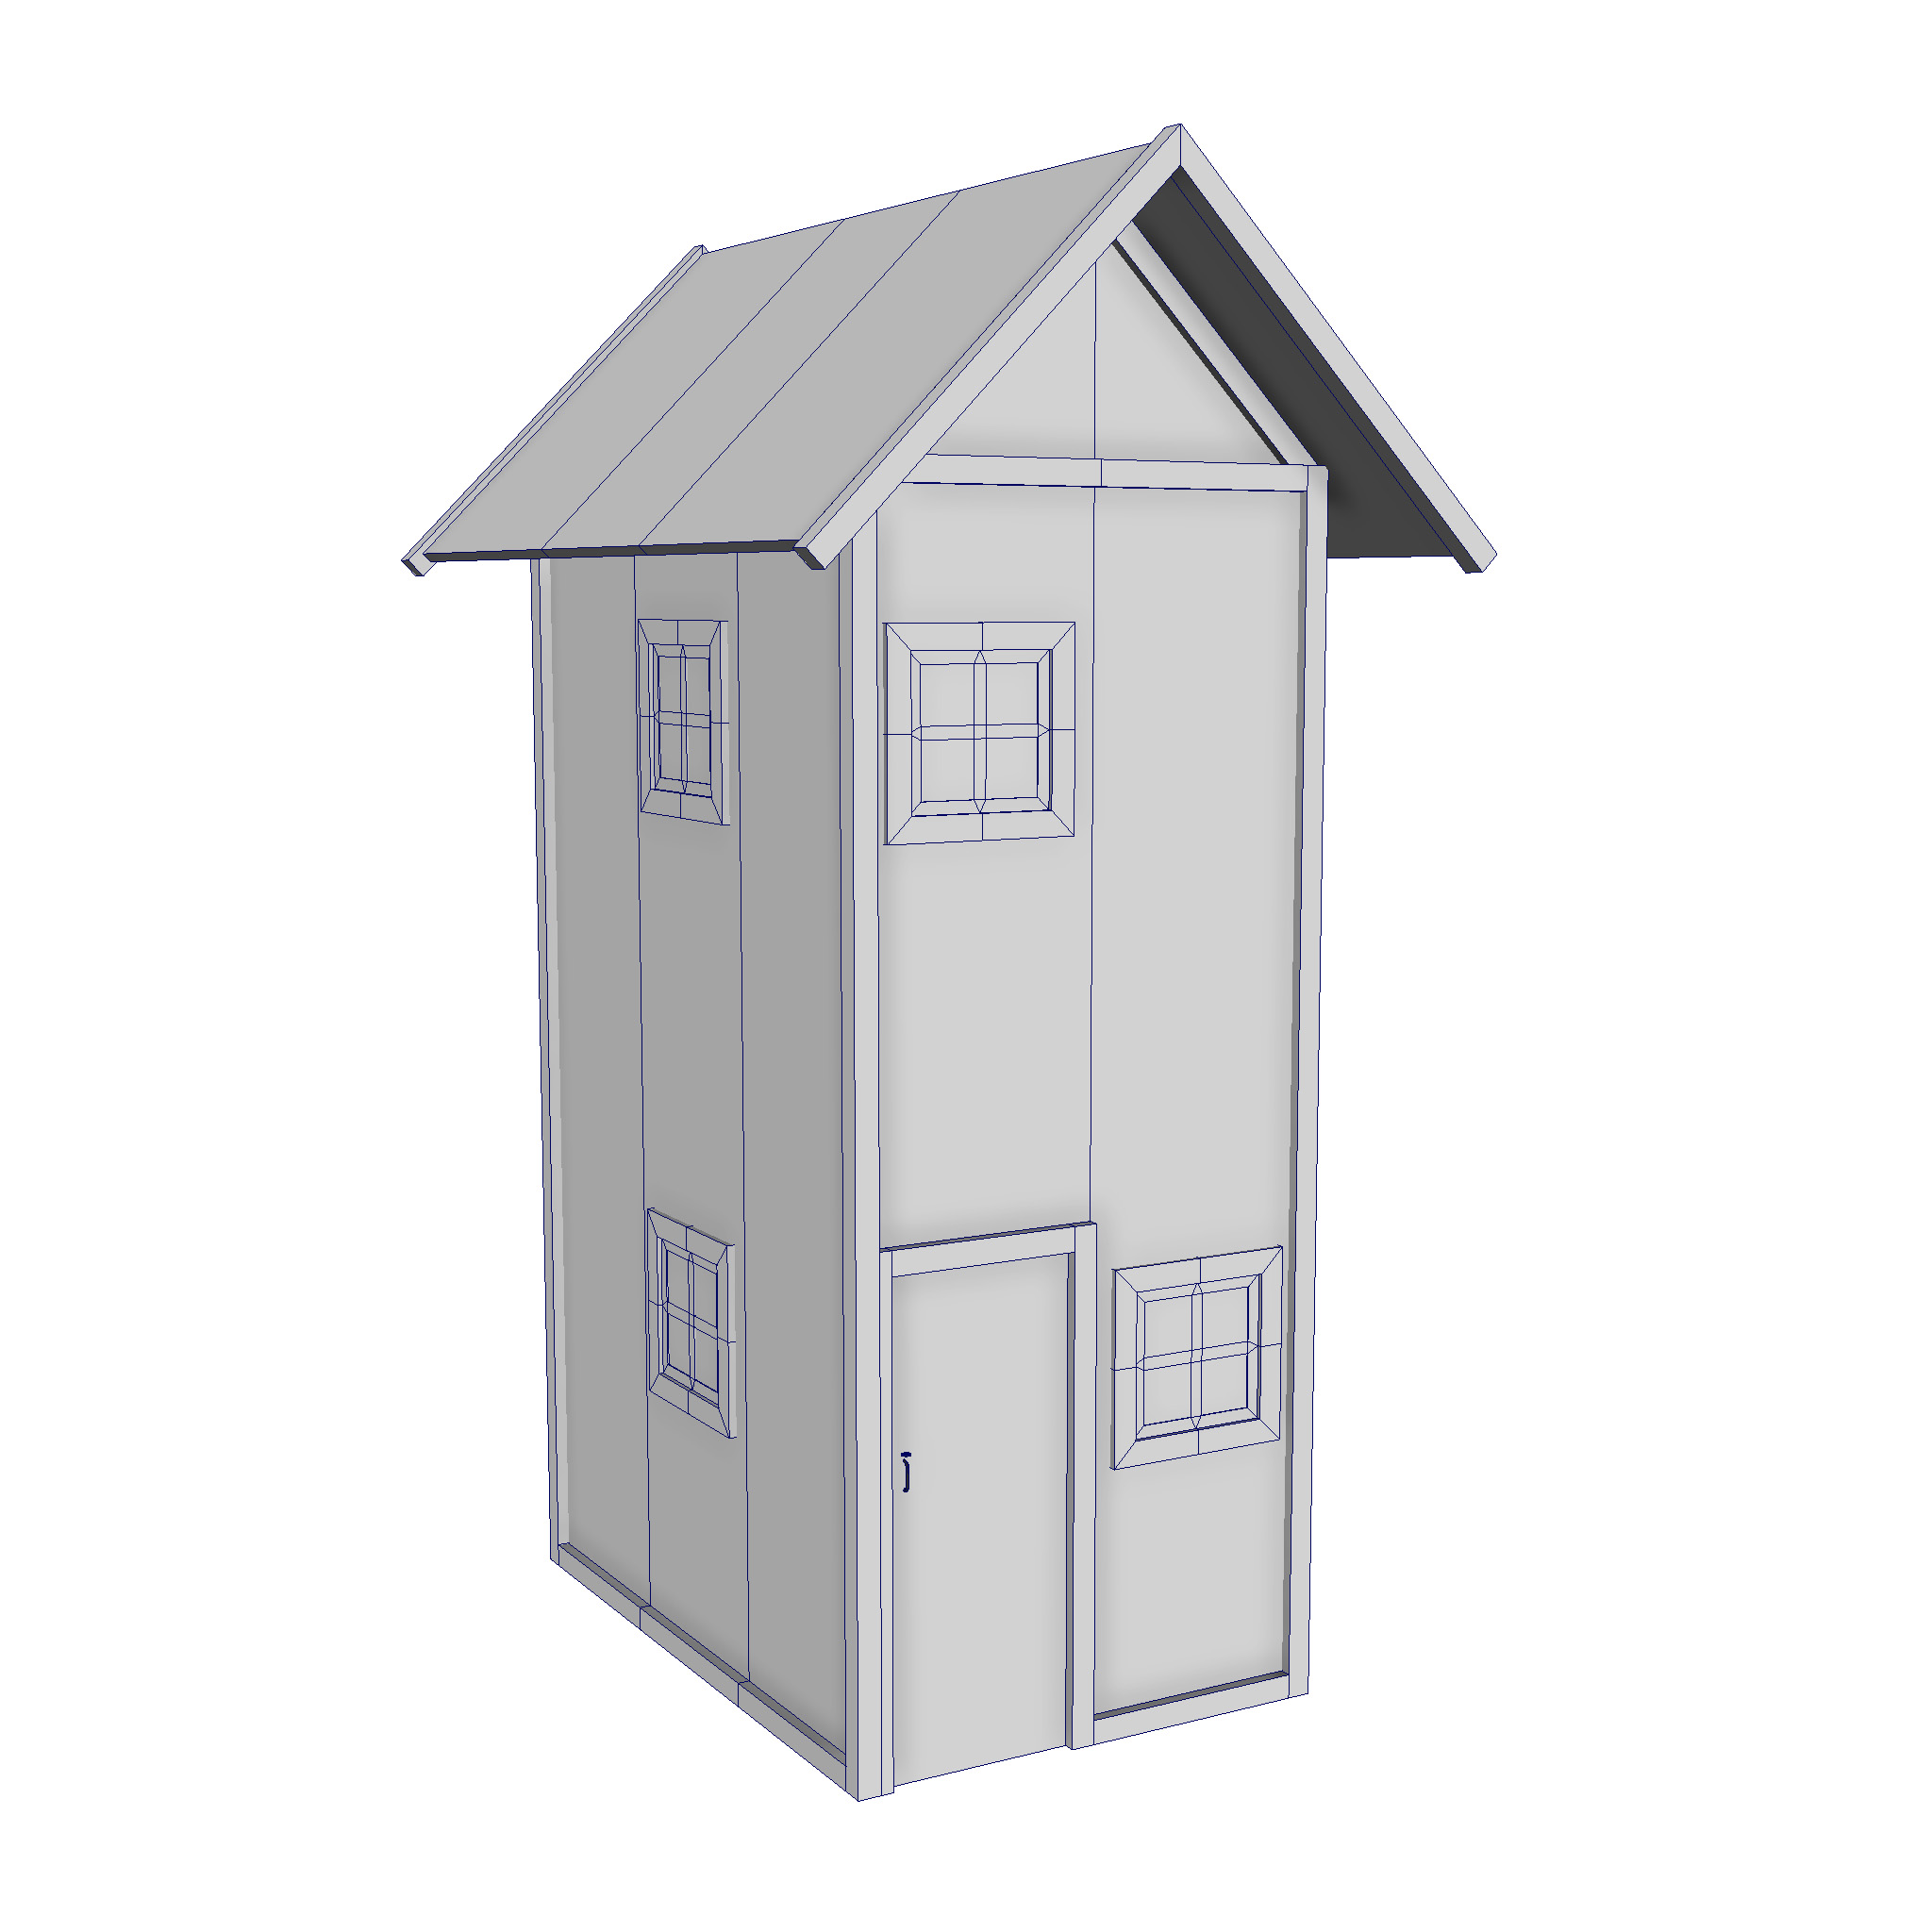 modular wood house set 3d model fbx ma mb 271438